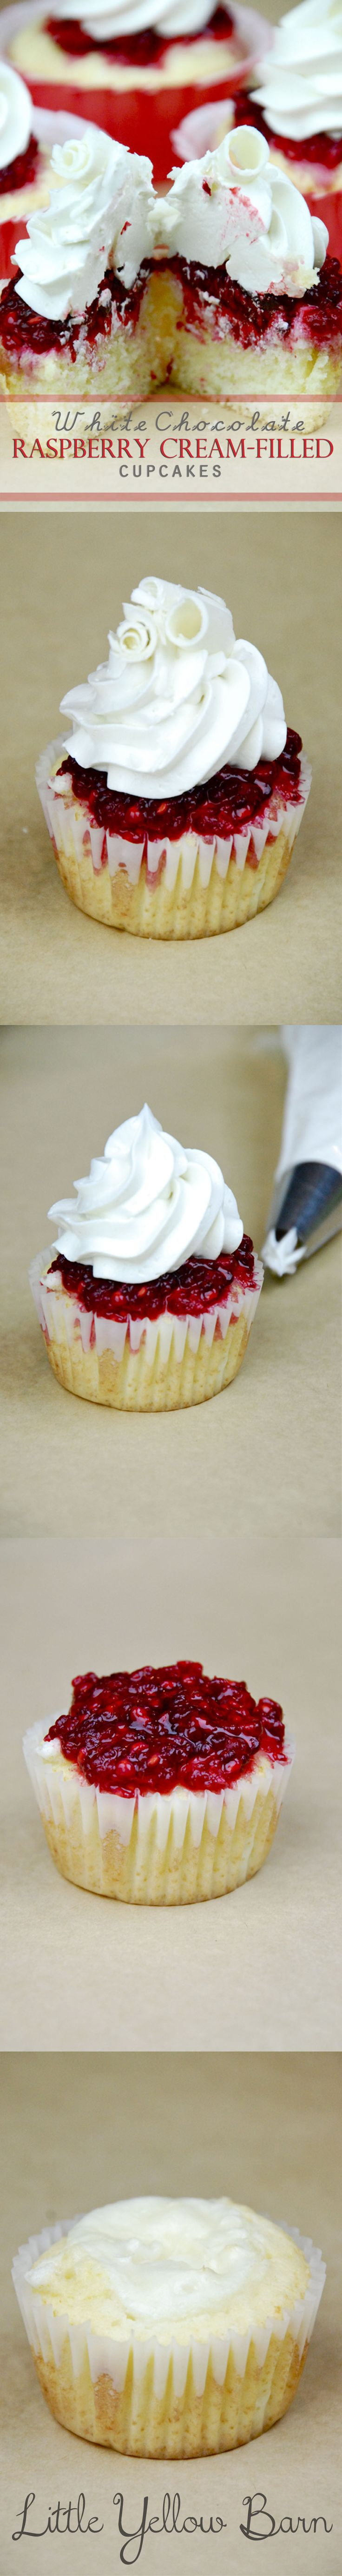 Vanilla cupcake, cream cheese filling, raspberry smothering and white chocolate buttercream topping.  Yes please.  Use clear plastic cups to package cupcakes for personal delivery.